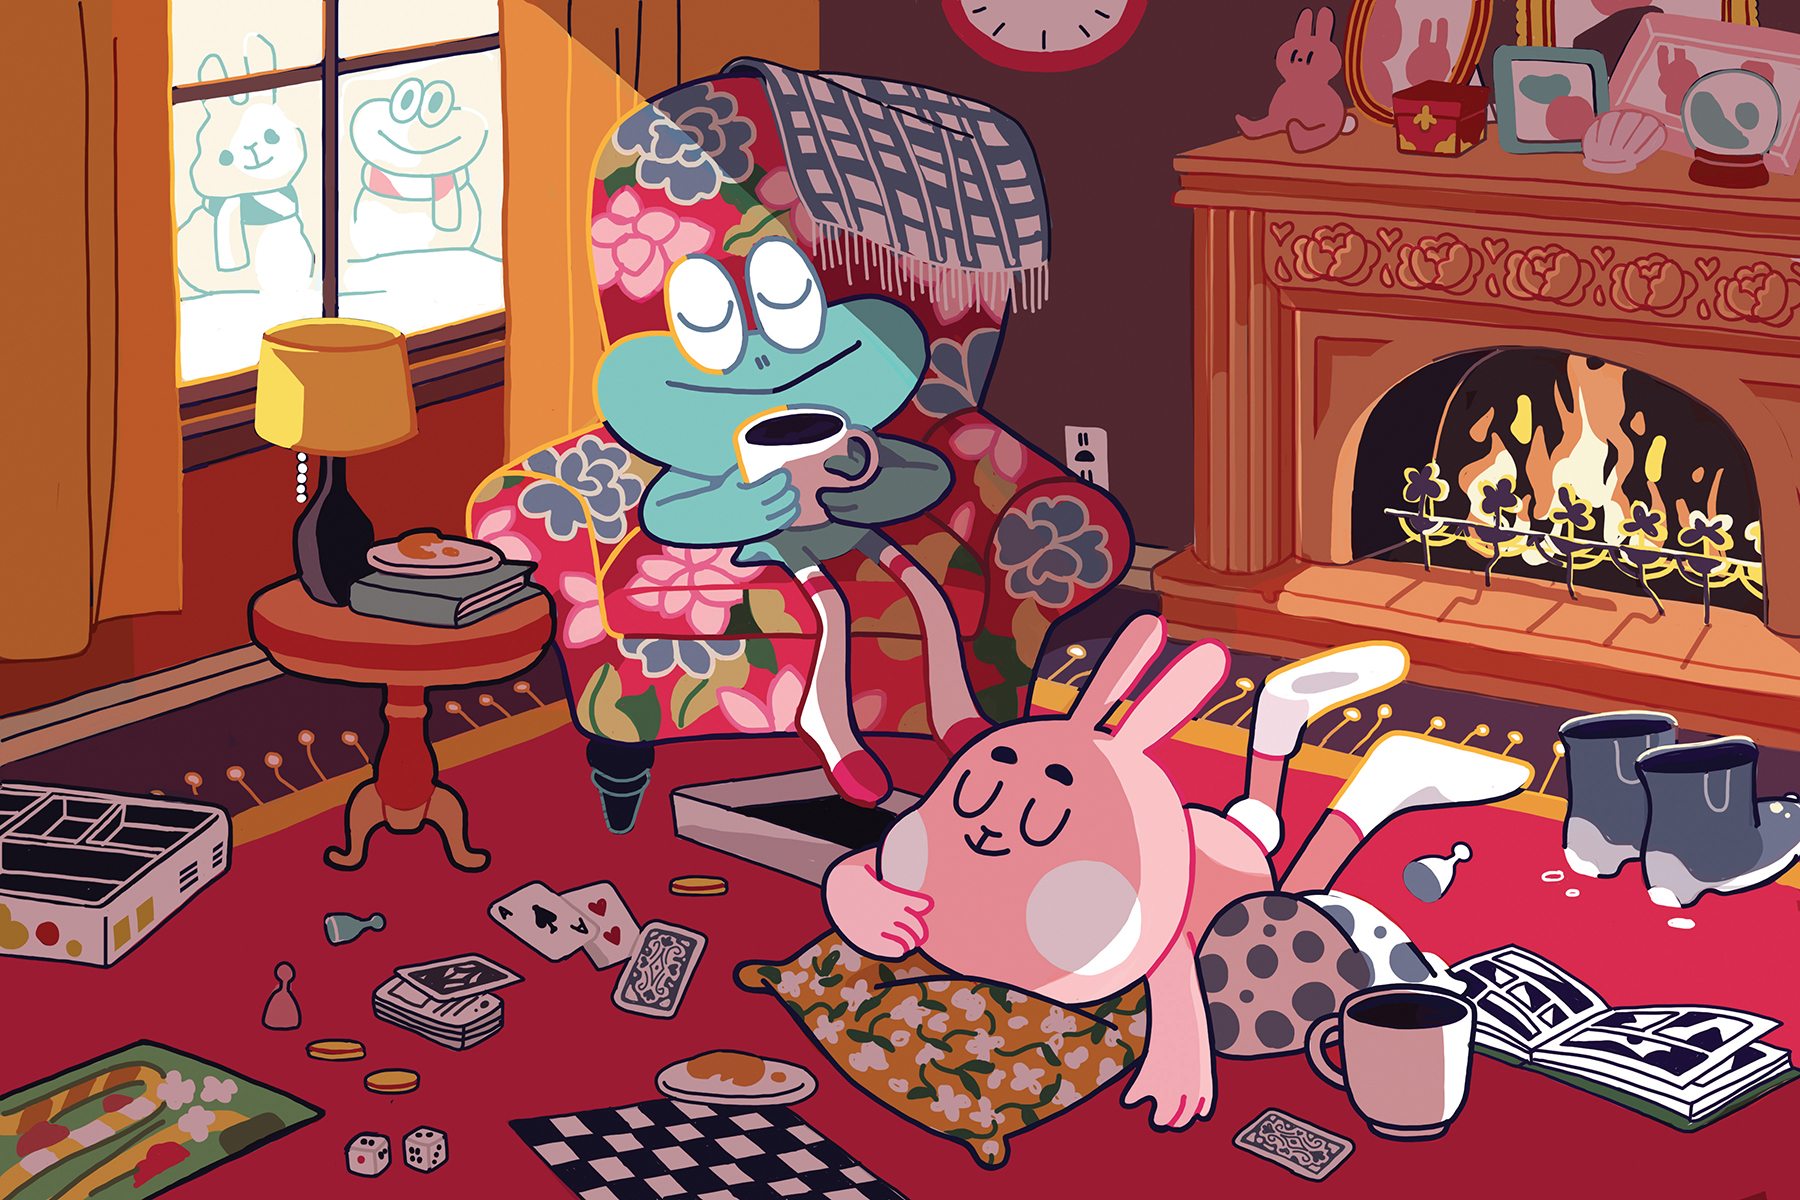 StickySkippy-Fireplace_CMYK_RGB.jpg